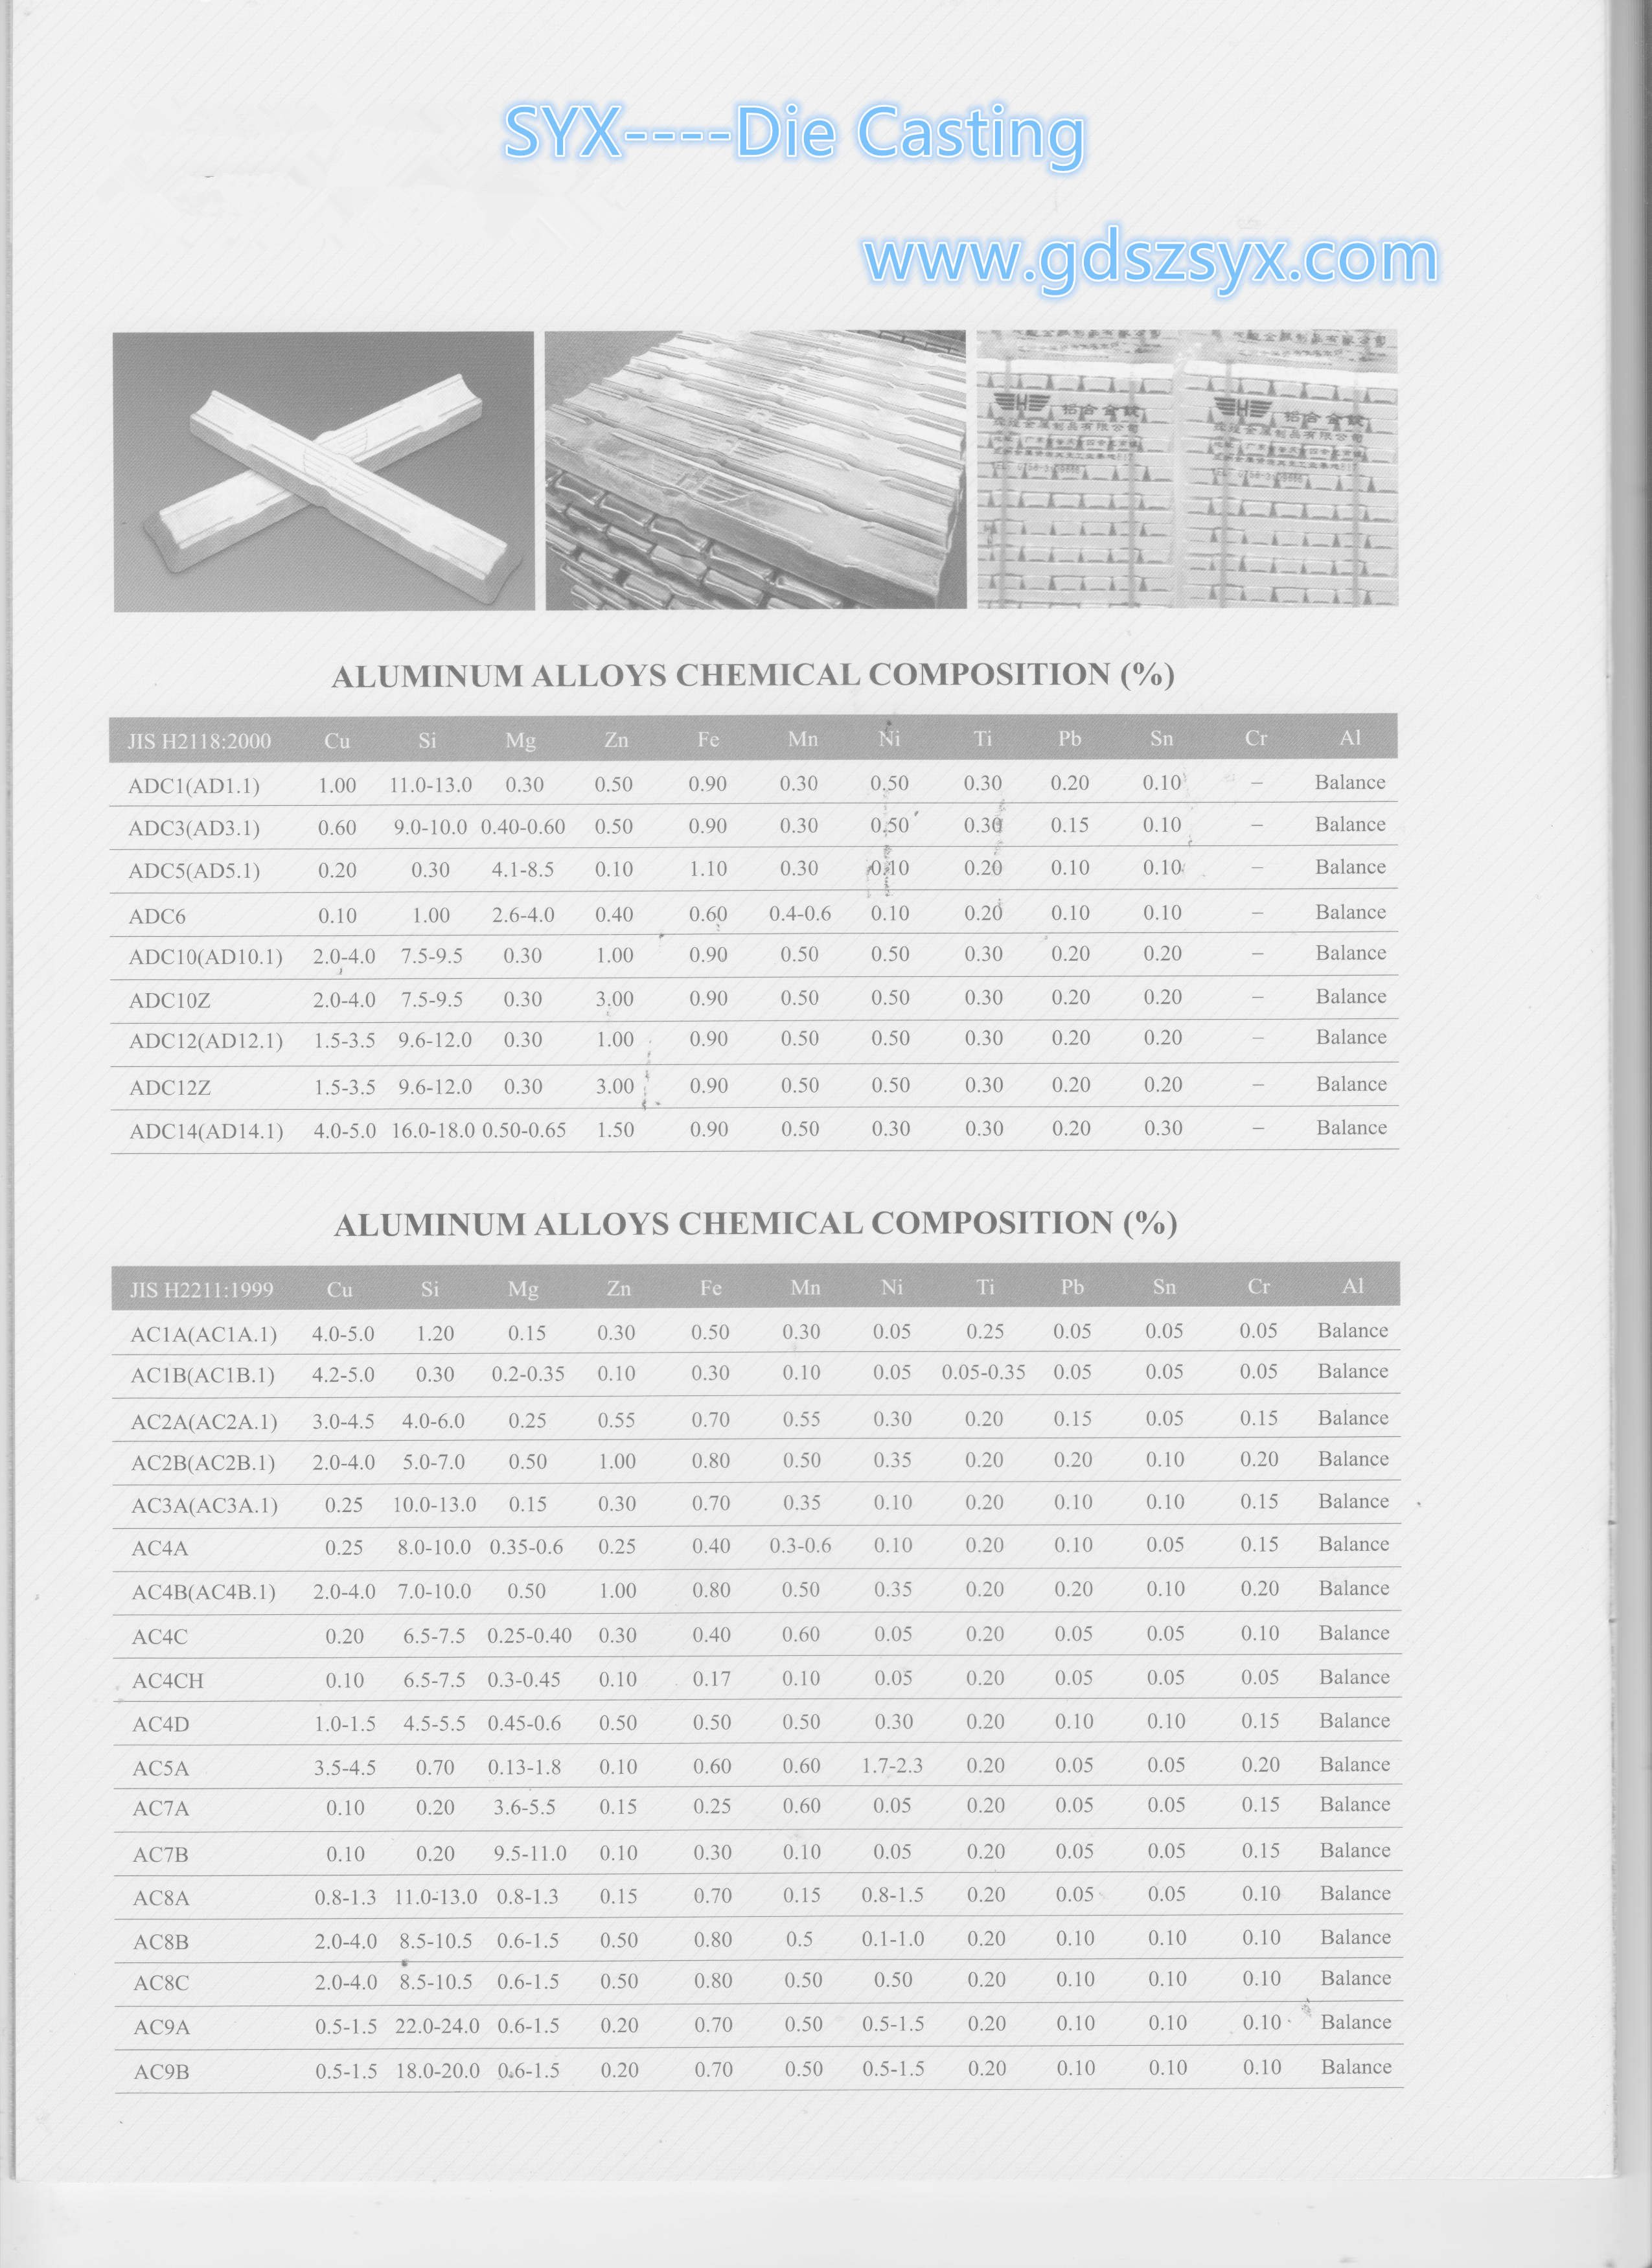 adc12 aluminum alloy die casting specification | A383